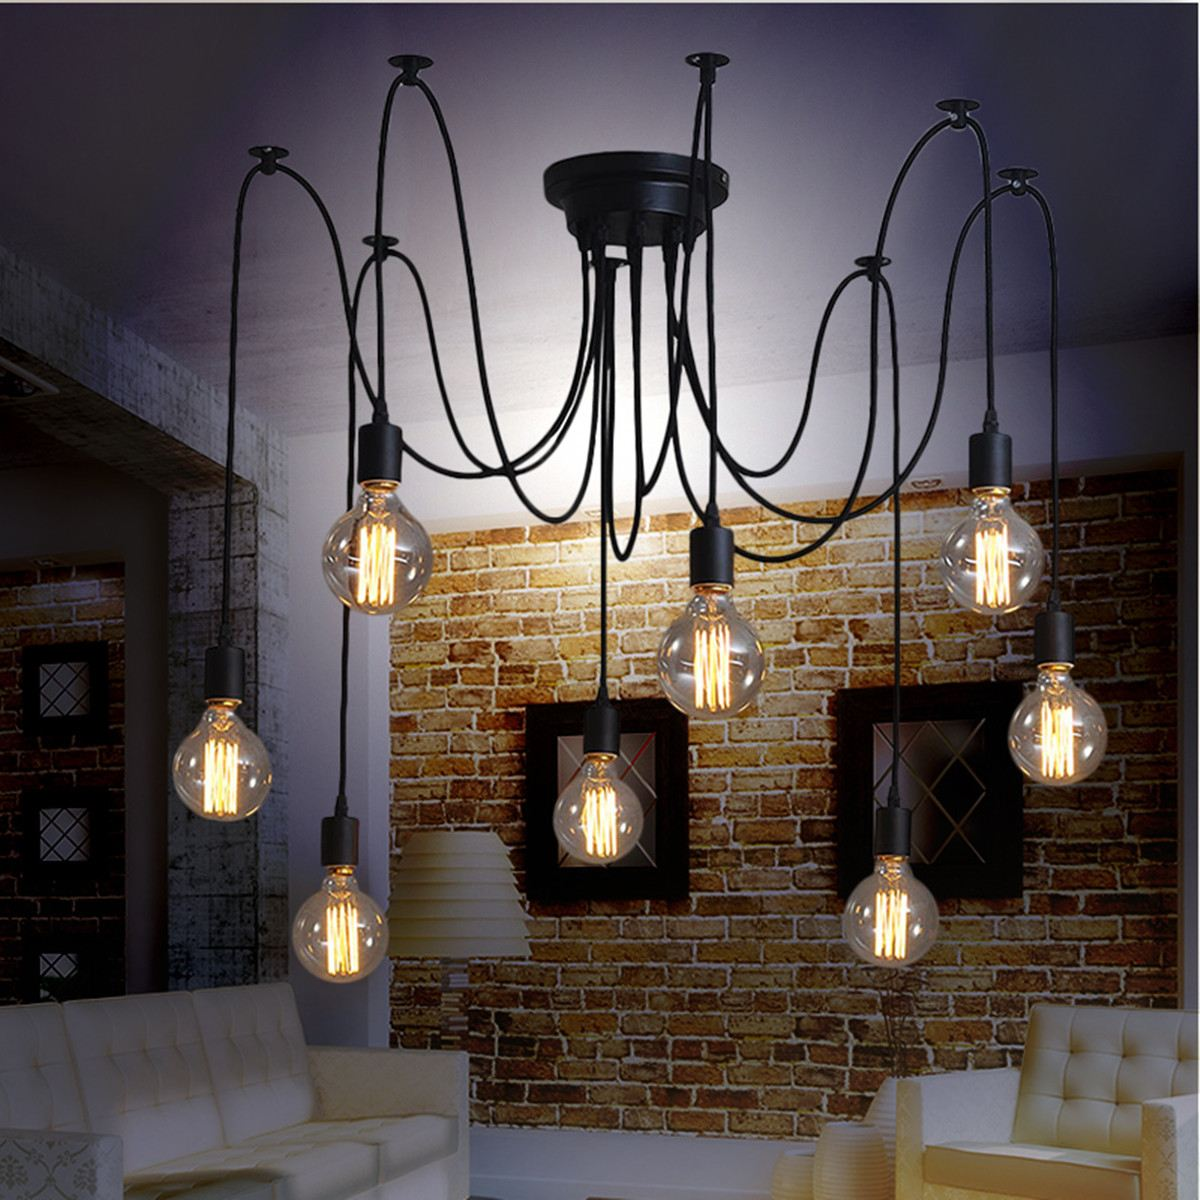 Modern Retro DIY 8 Pendant Lights Hanging E27 Edison Bulb Spider Night Lamp Fixture Living Room